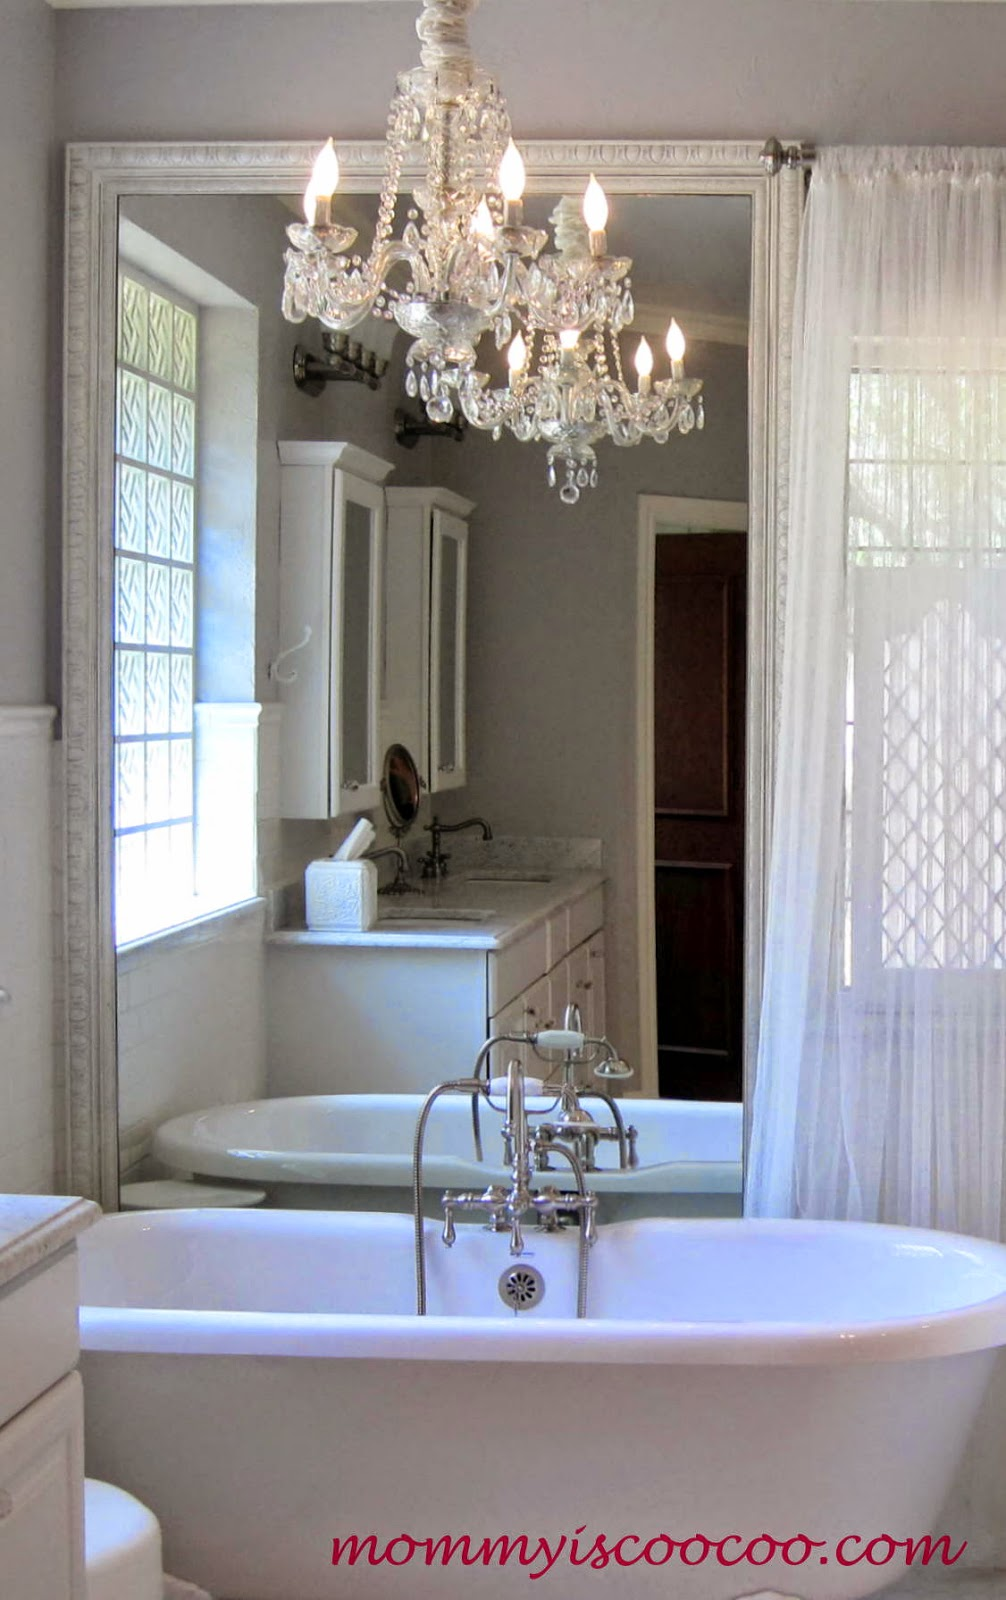 Awesome How to remove a large builder grade vanity mirror Mommy is Coocoo on Remodelaholic